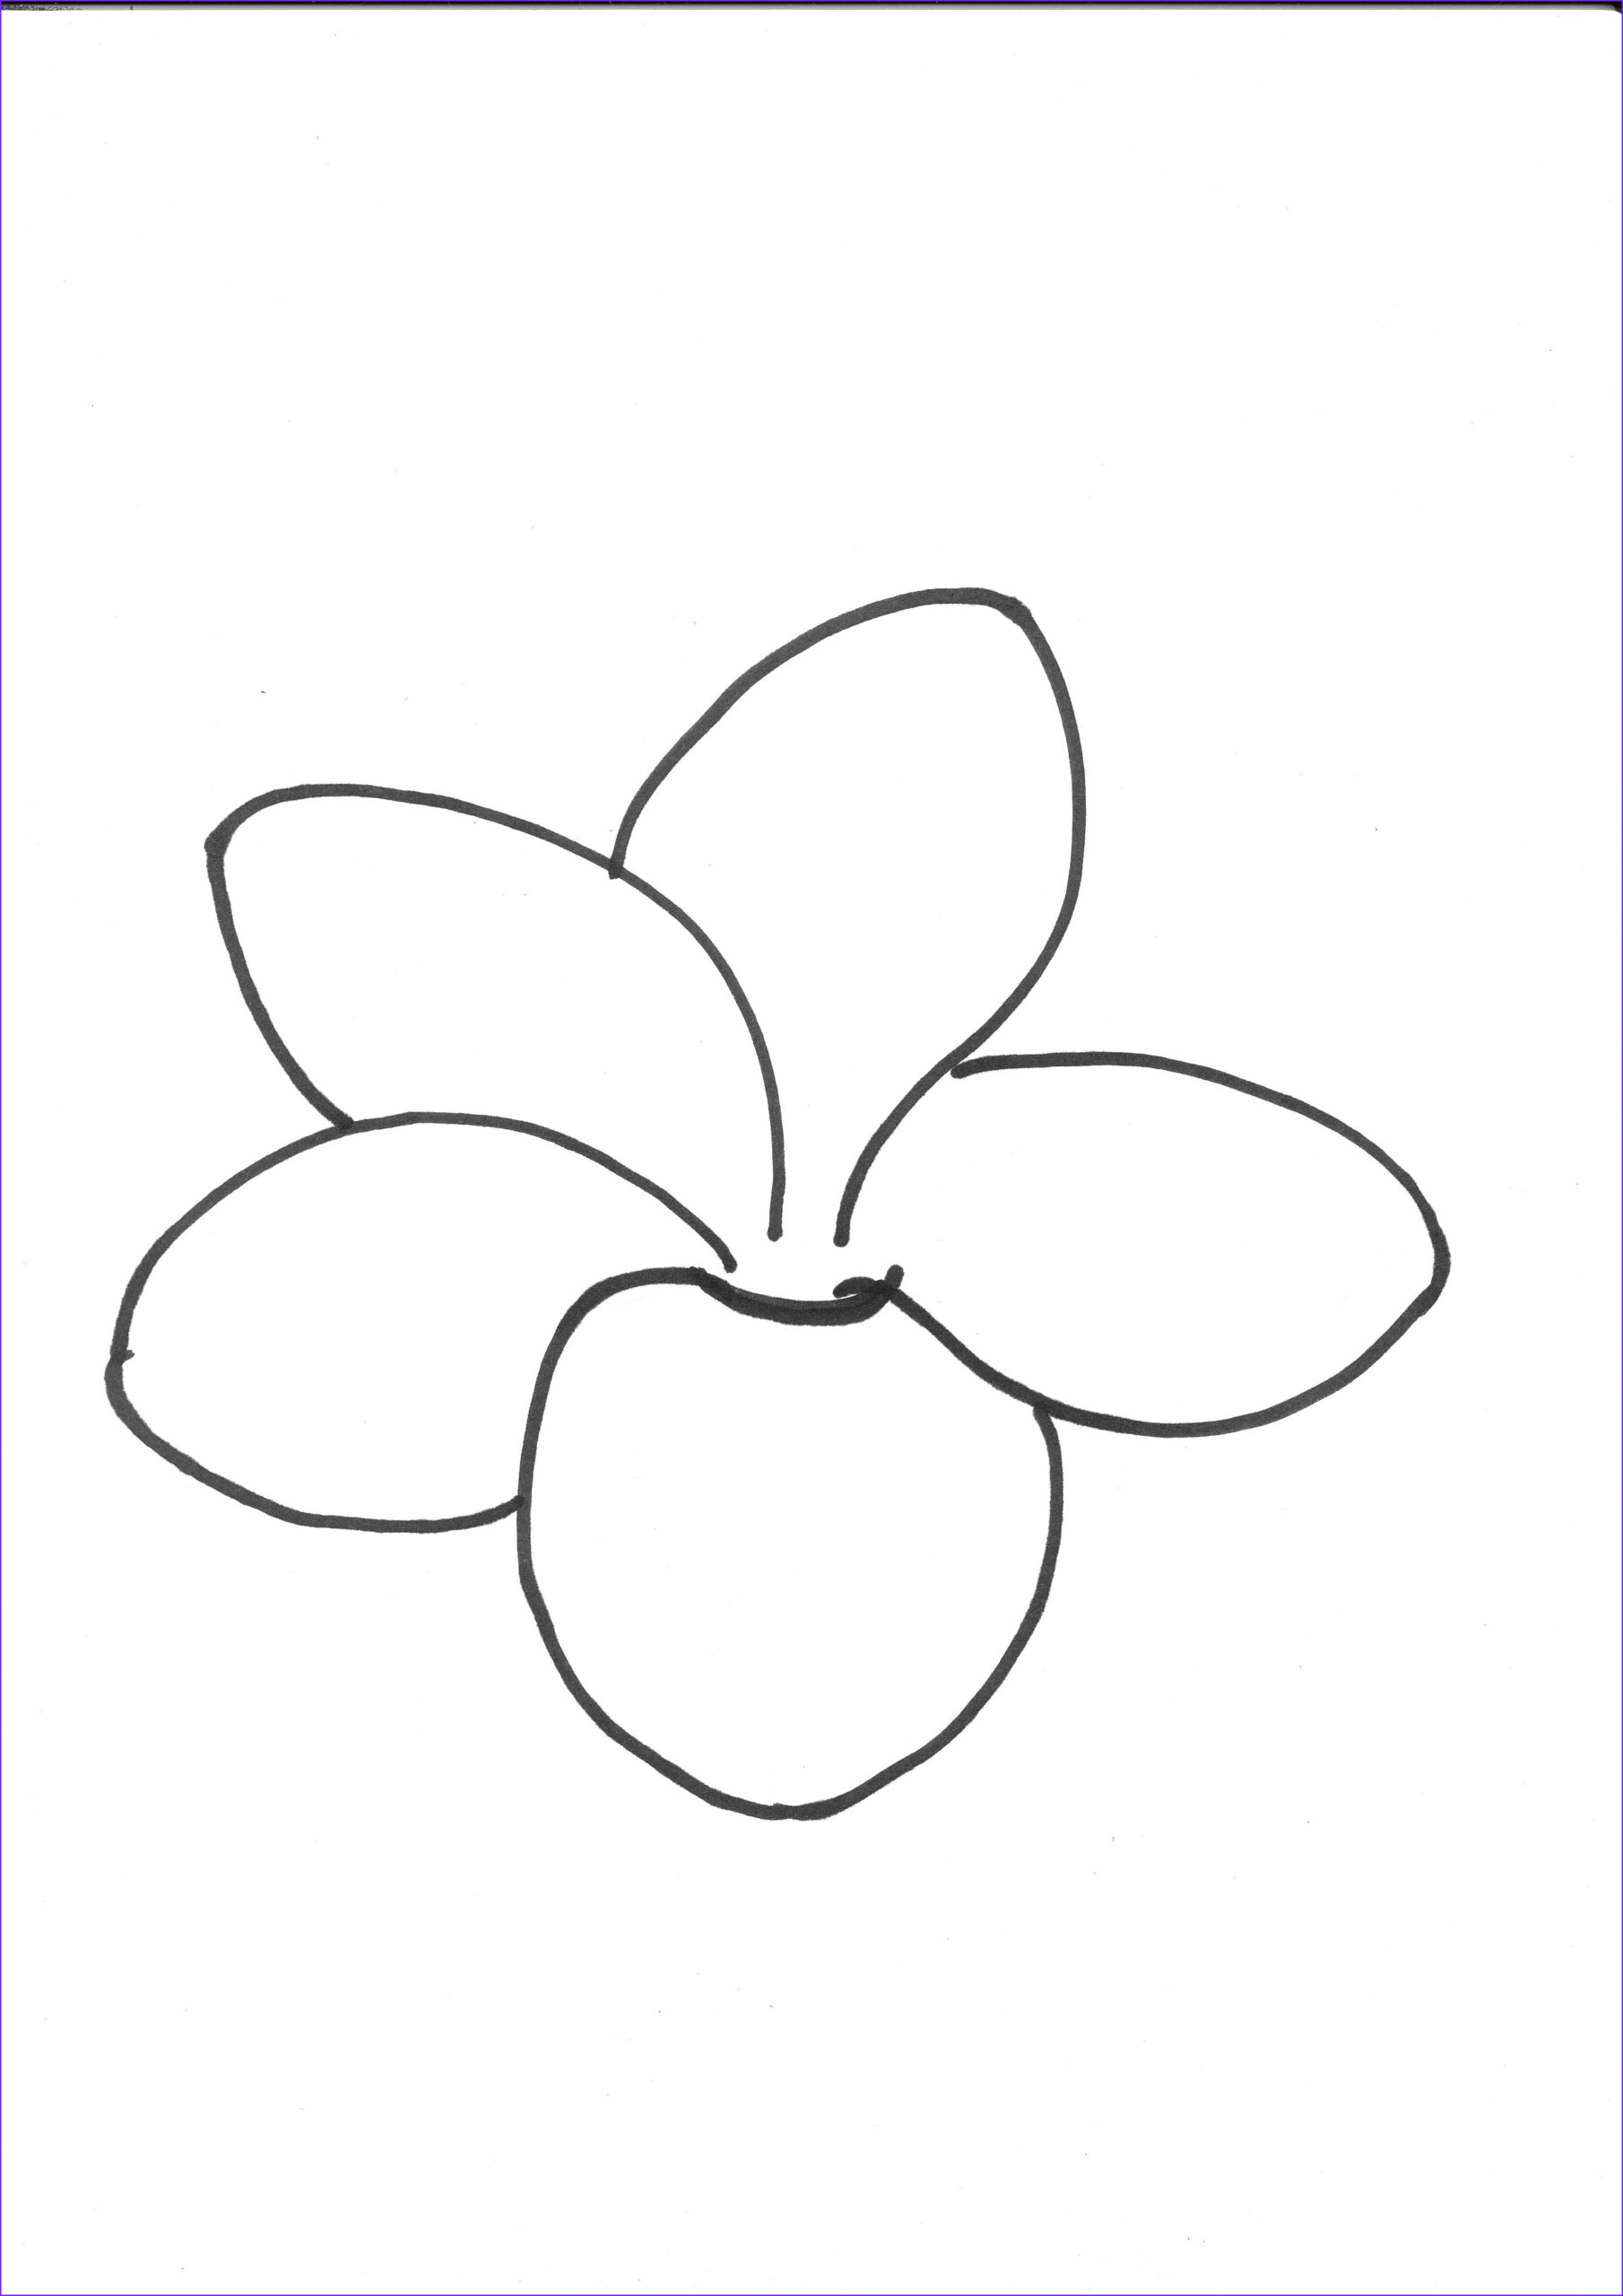 Plumeria Coloring Cool Collection Frangipani Coloring Download Frangipani Coloring